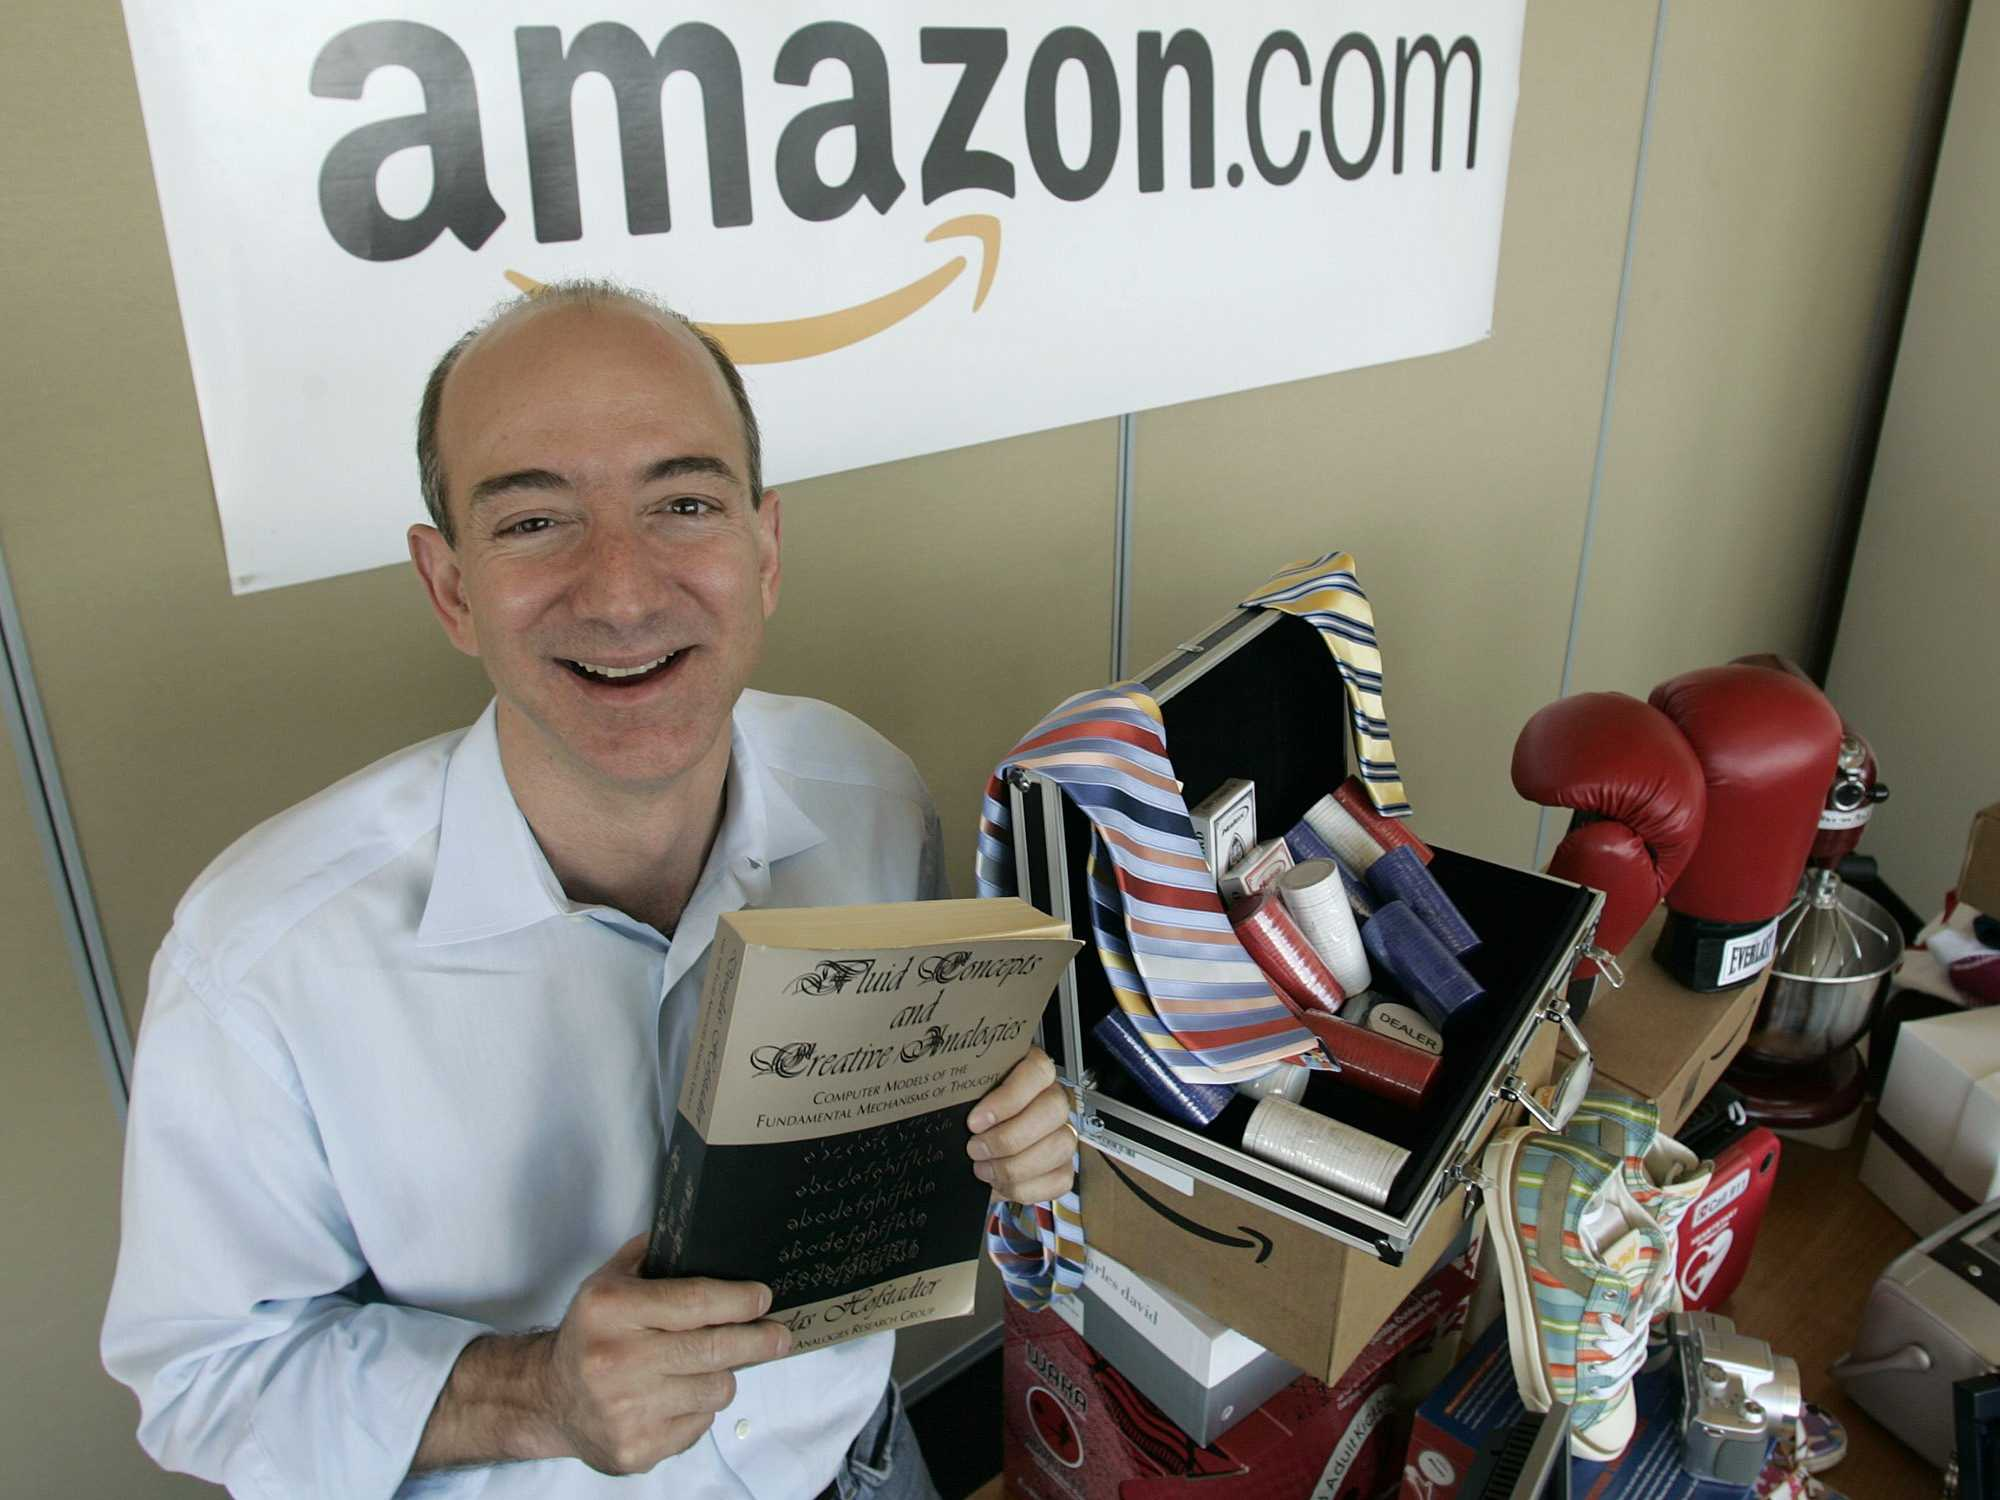 Is this the future of work? Jeff Bezos and the Amazon Way